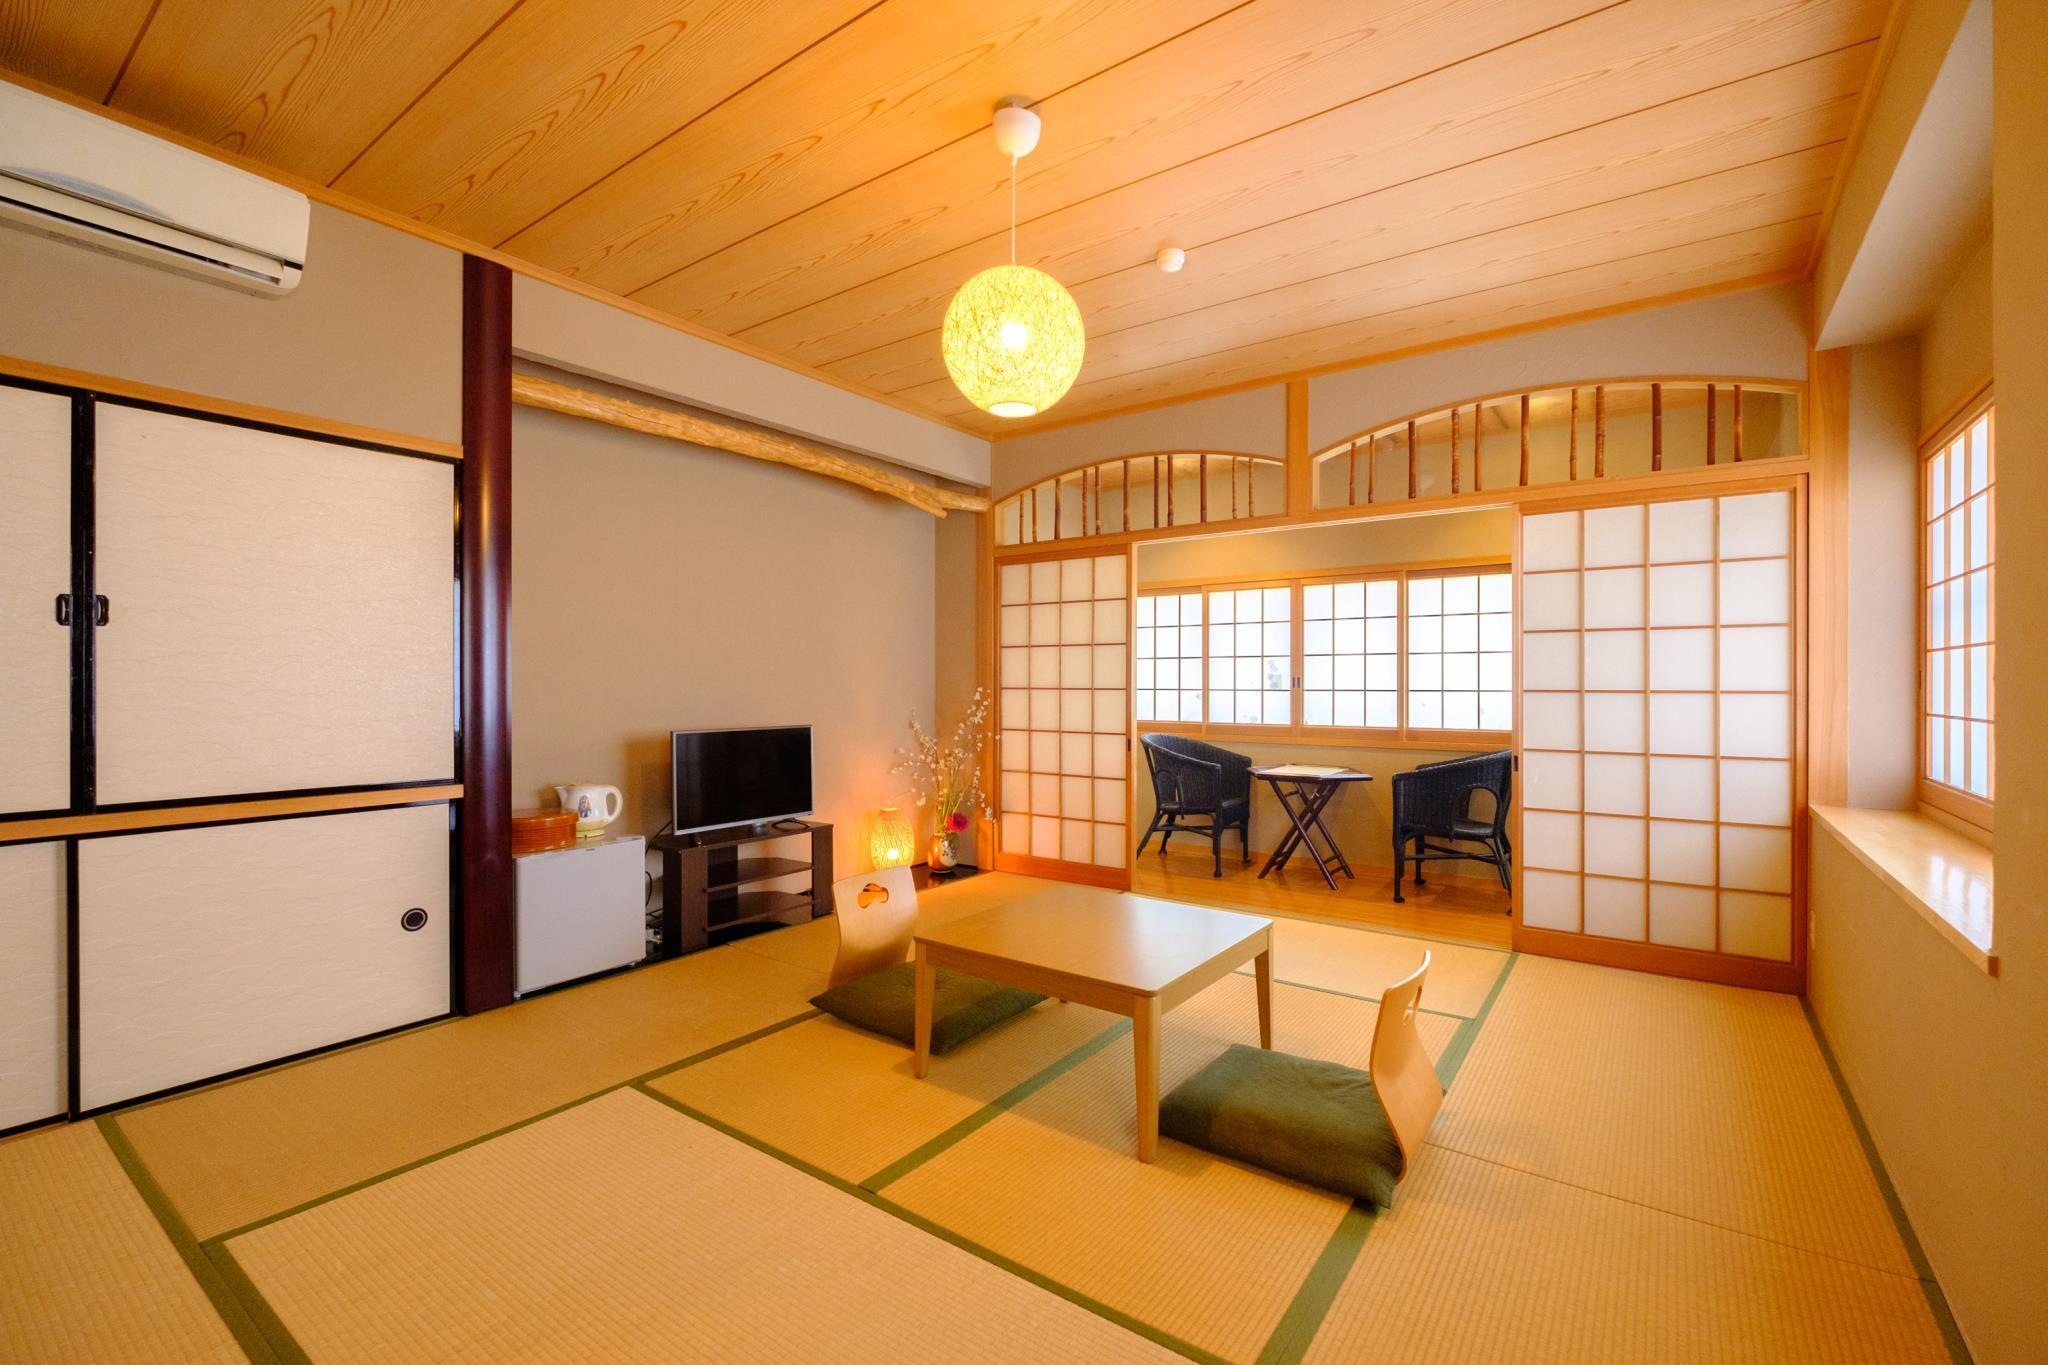 日式房(10张榻榻米)-带独立卫生间 (Japanese Style Room with 10 Tatami and Private Toilet)